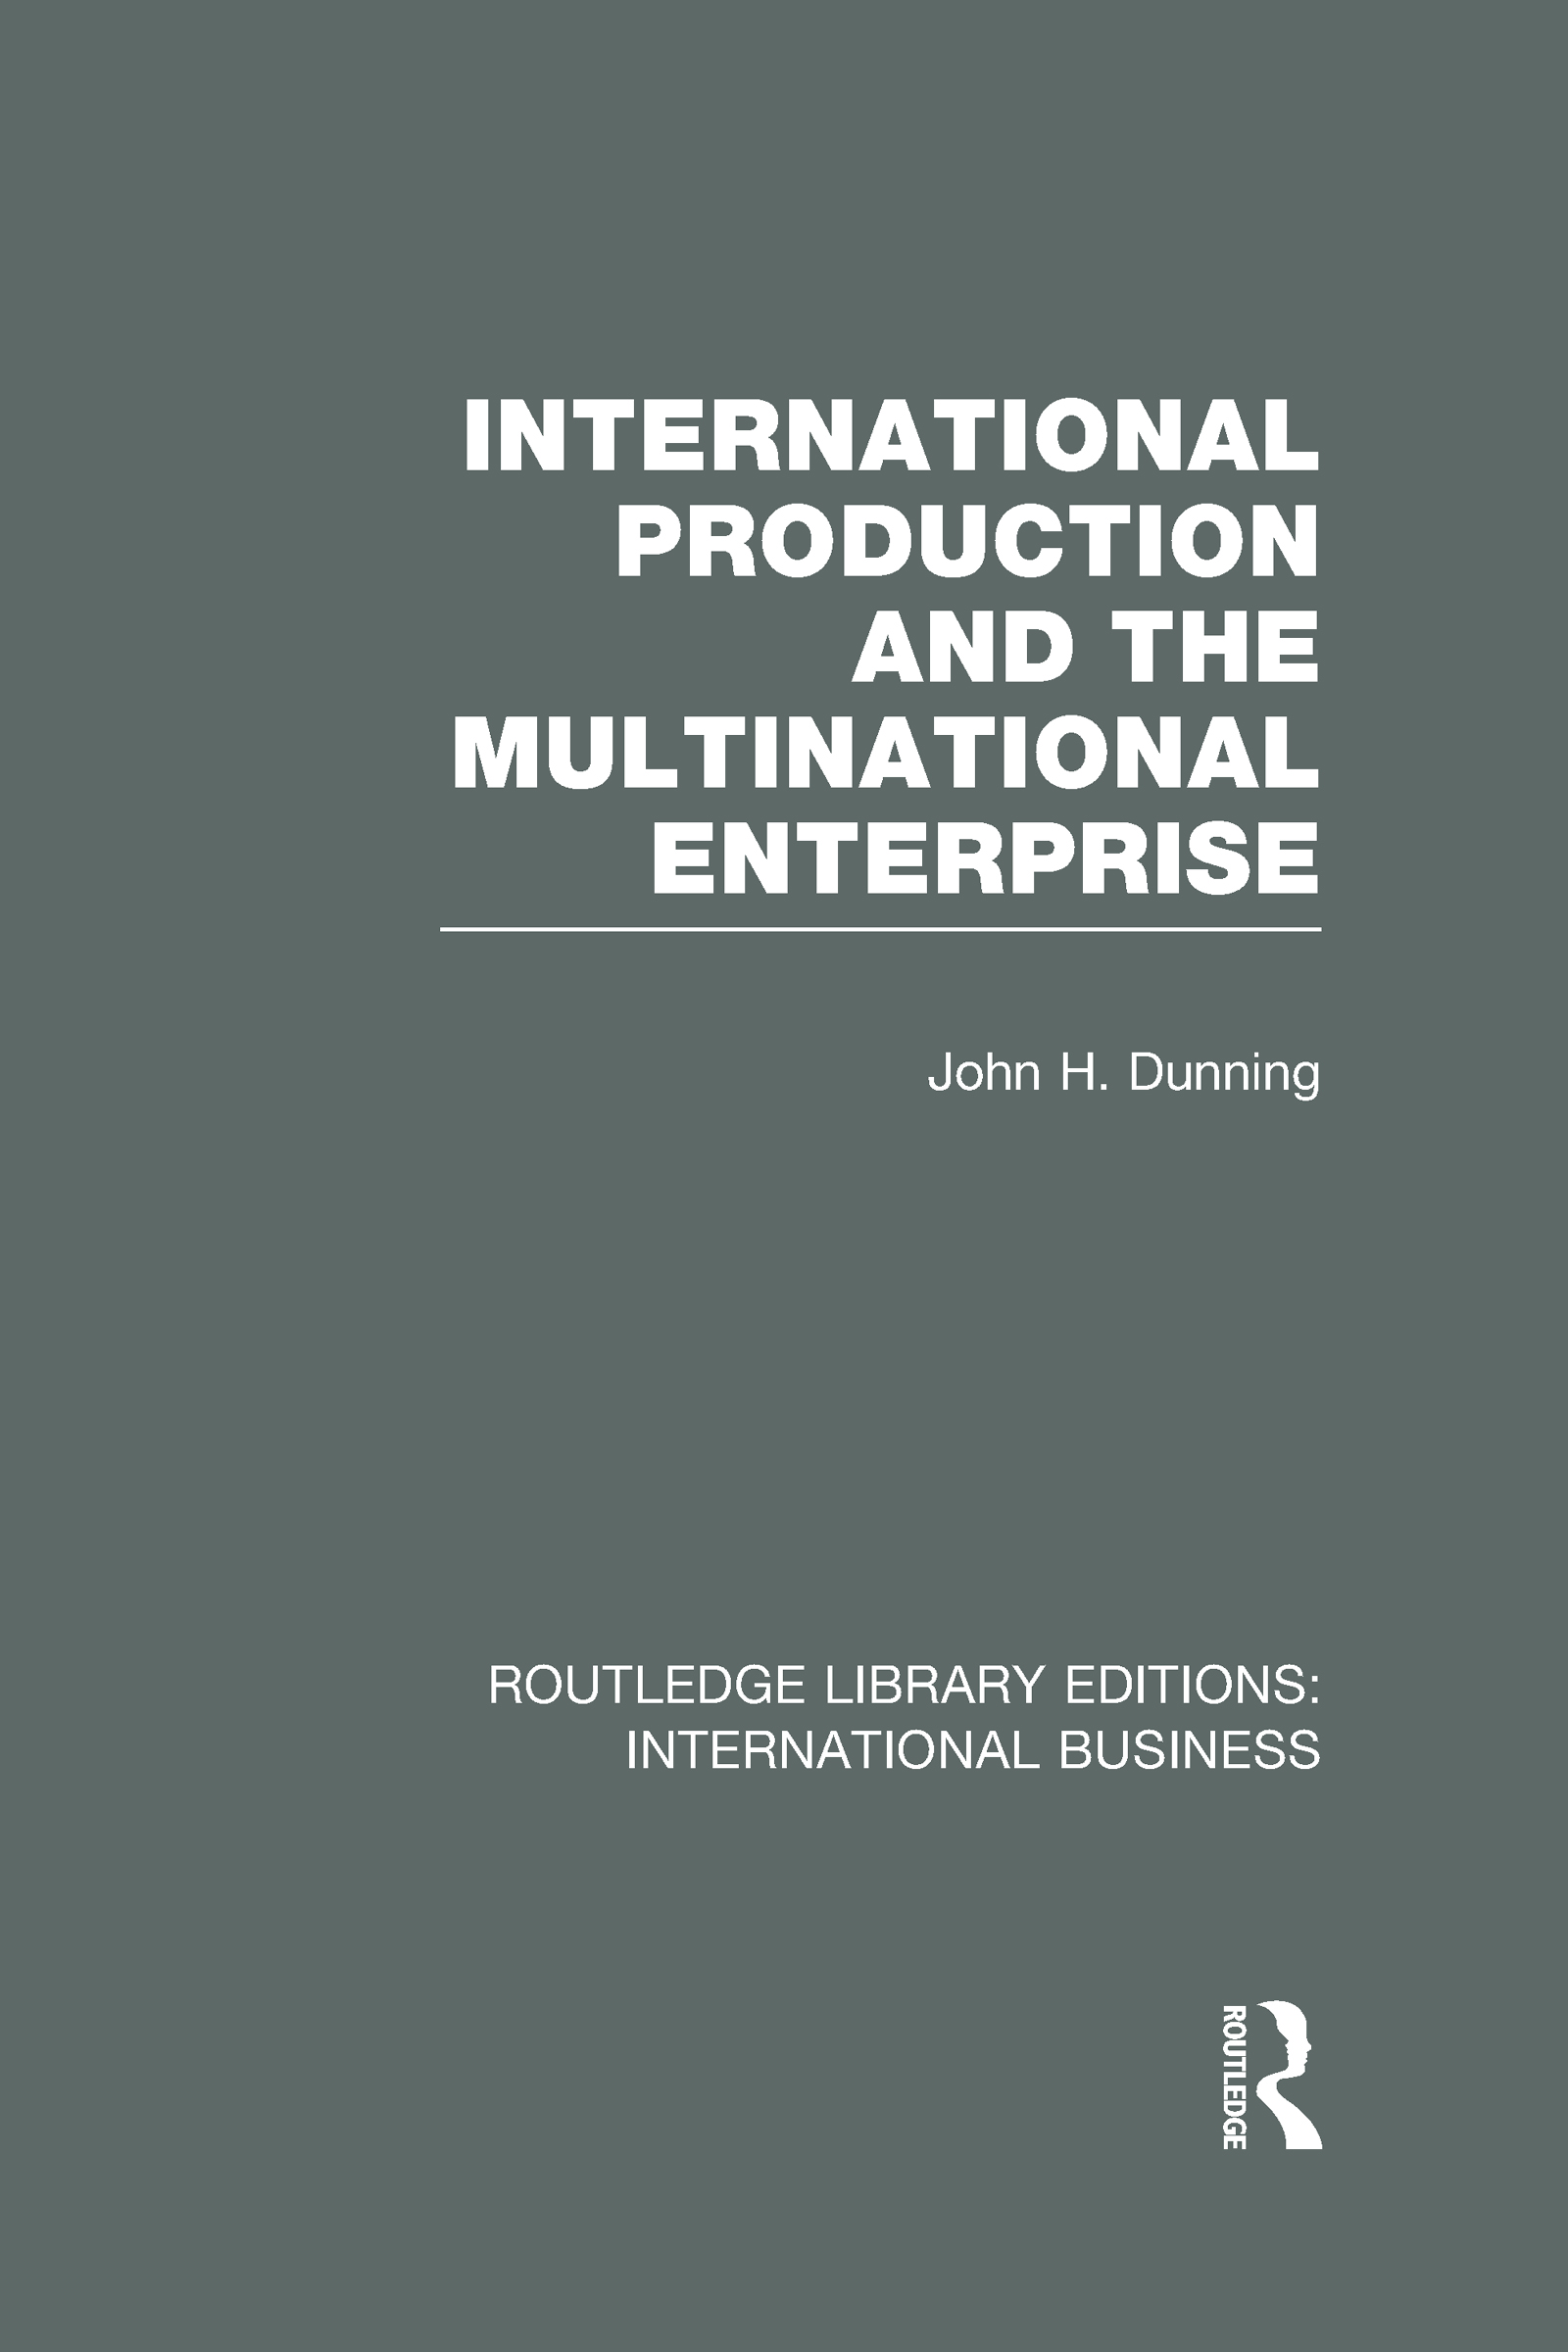 International Production and the Multinational Enterprise (RLE International Business) (Hardback) book cover